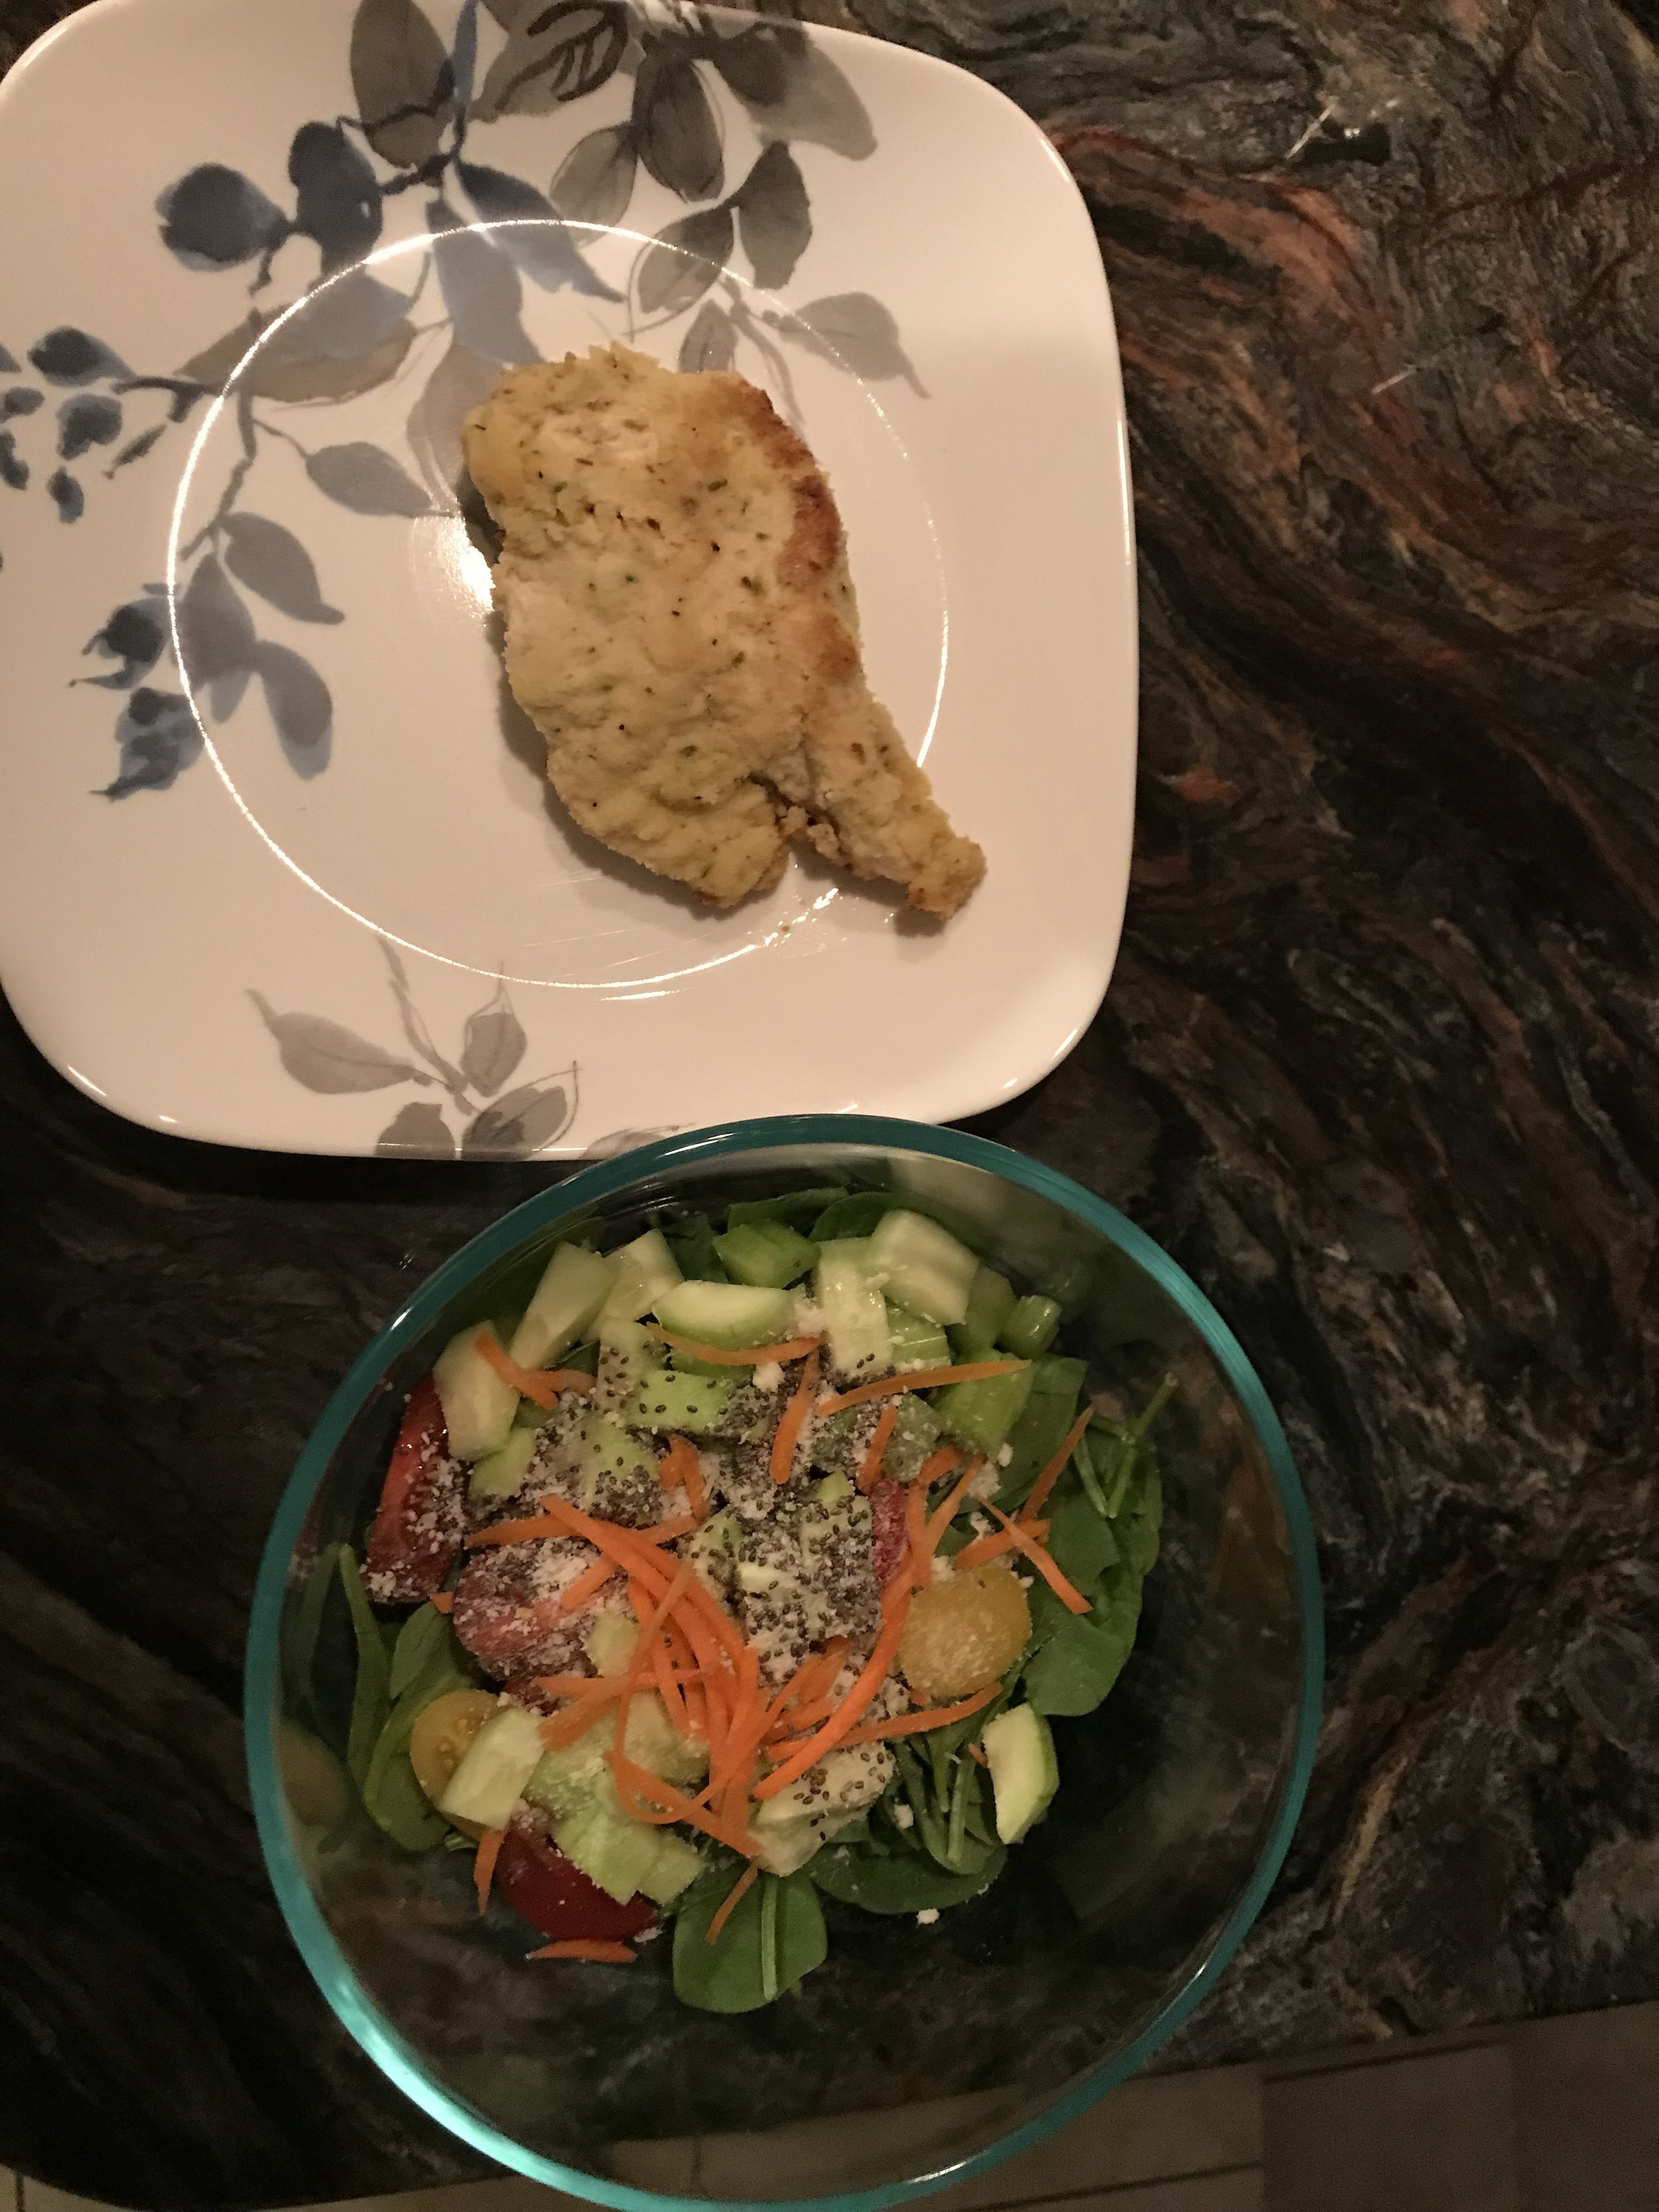 DINNER - Fixate Almond Crusted Chicken and Salad (spinach, cucumber, celery, tomato, shredded carrots, chia seeds, parmesan cheese, and Asian Sesame Dressing).